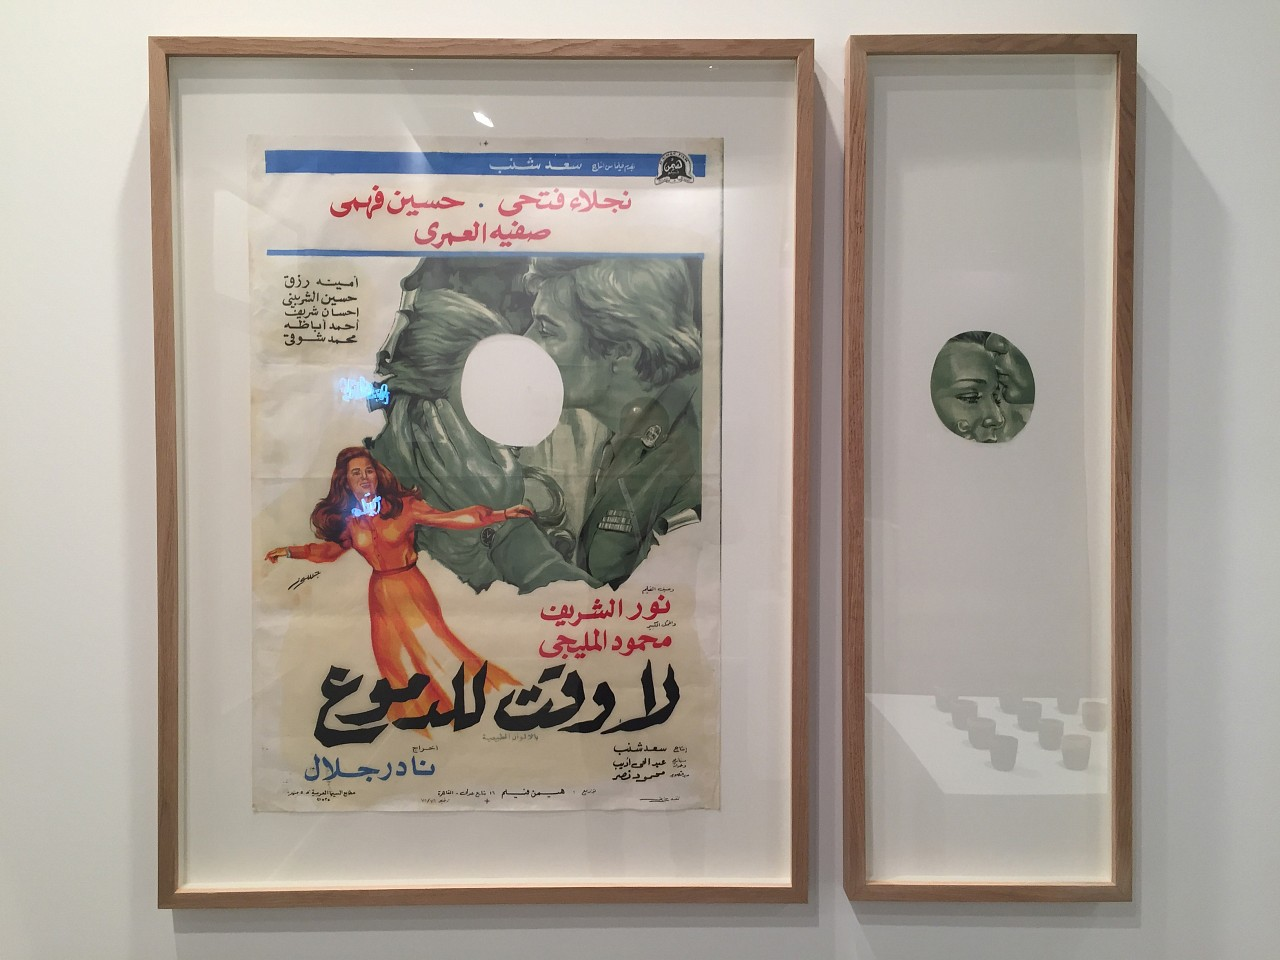 "<p><span class=""viewer-caption-artist"">Ayman Yossri Daydban</span></p> <p><span class=""viewer-caption-title""><i>03 from the Posters series (La Wakta Liddomoo)</i></span>, <span class=""viewer-caption-year"">2016</span></p> <p><span class=""viewer-caption-media"">Oil on Paper (Vintage Poster)</span></p> <p><span class=""viewer-caption-inventory"">AYD0615</span></p> <p><span class=""viewer-caption-aux""></span></p>"